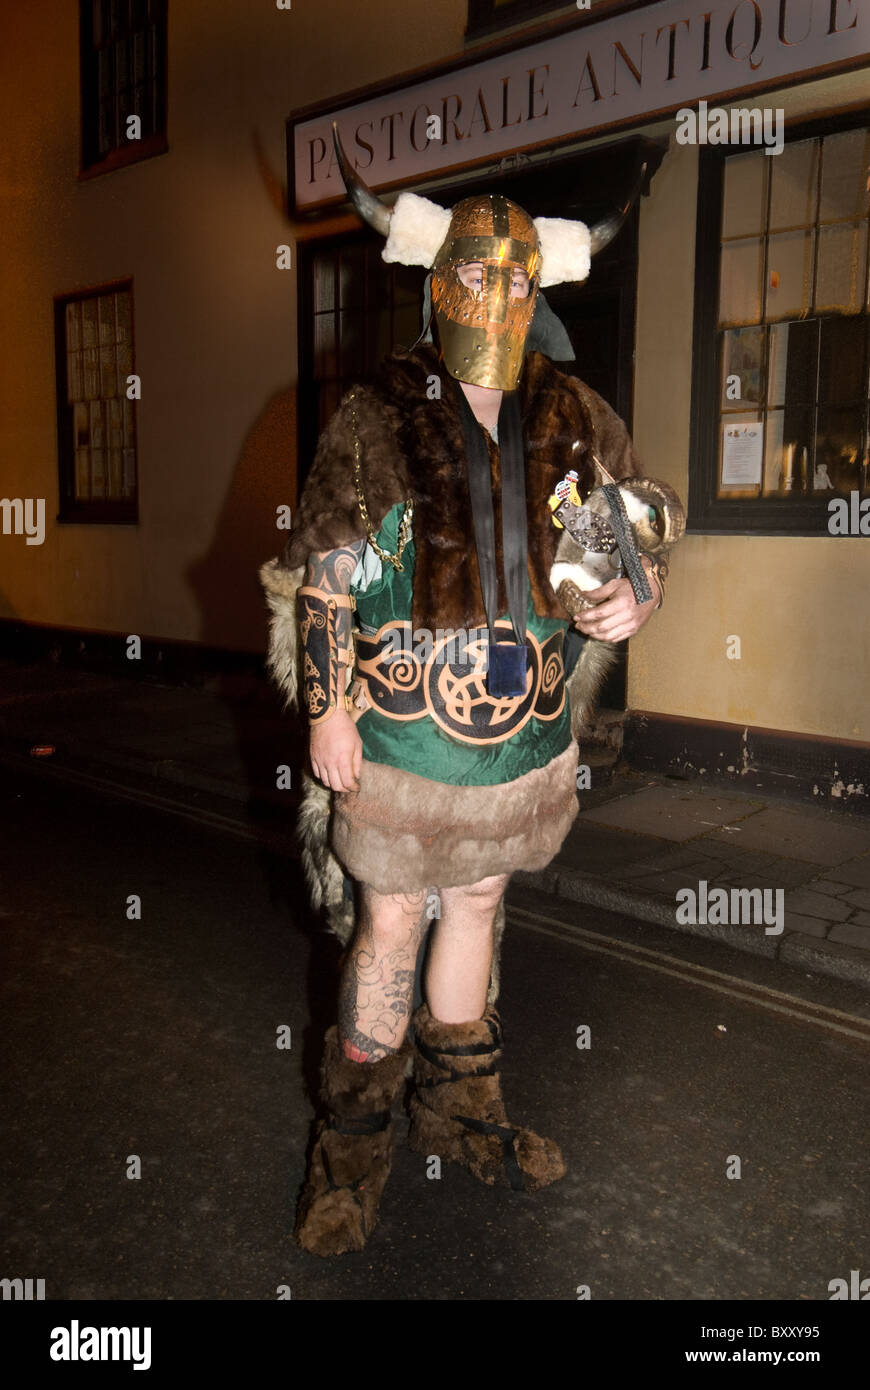 Man in Viking costume for Lewes Bonfire night - Stock Image & Viking Costume Stock Photos u0026 Viking Costume Stock Images - Alamy